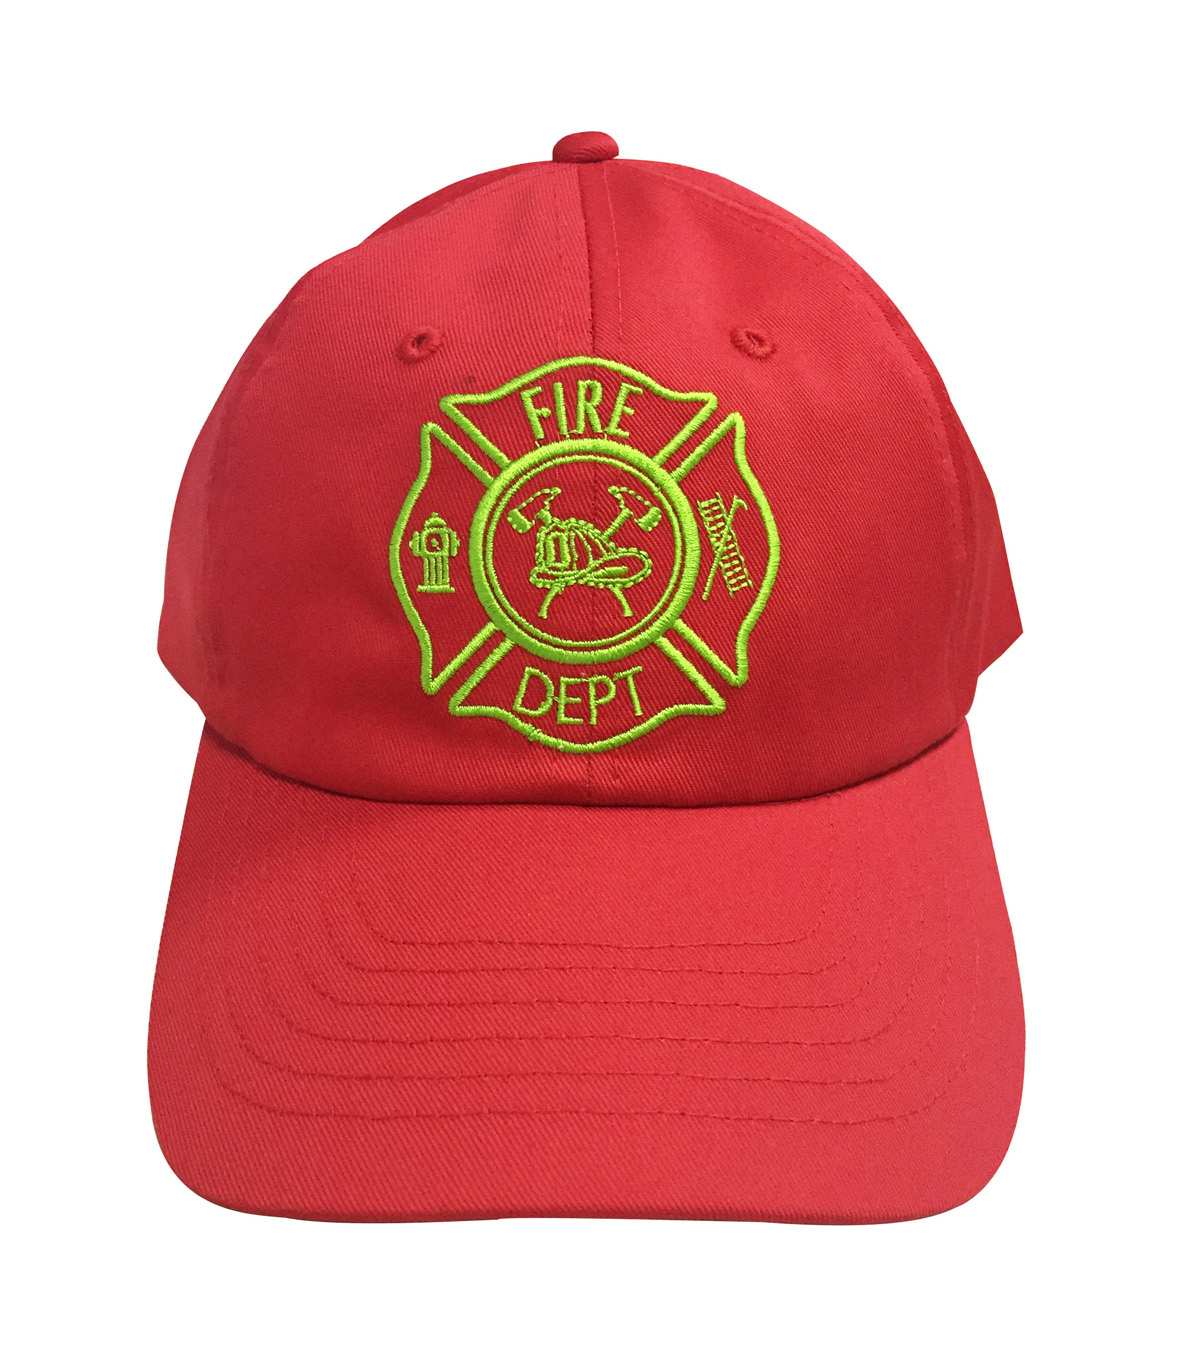 My 1st Career Gear Firefighter Top 18 Month & Red Firefighter Cap